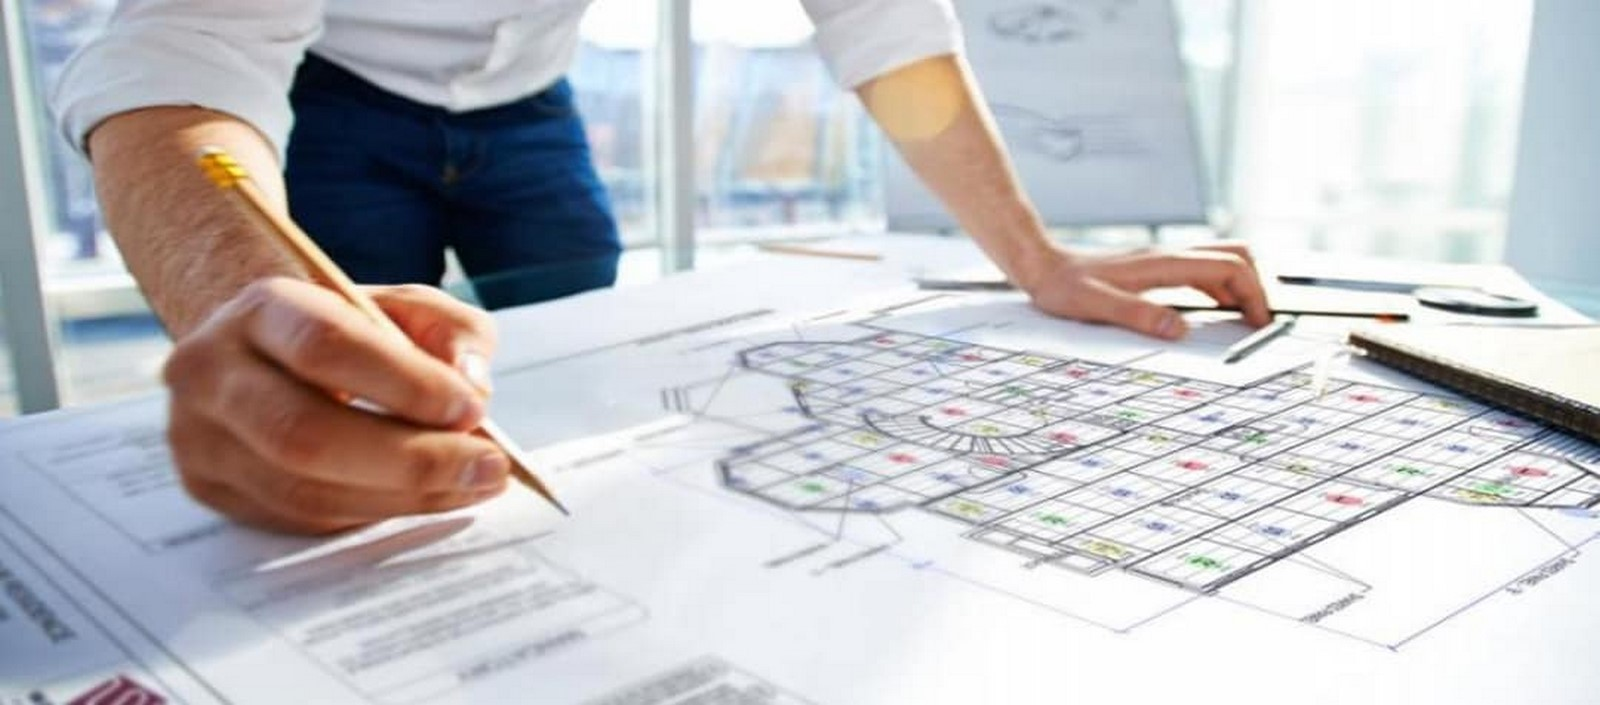 10 Mistakes You Should Avoid in Architectural Internship - Sheet5